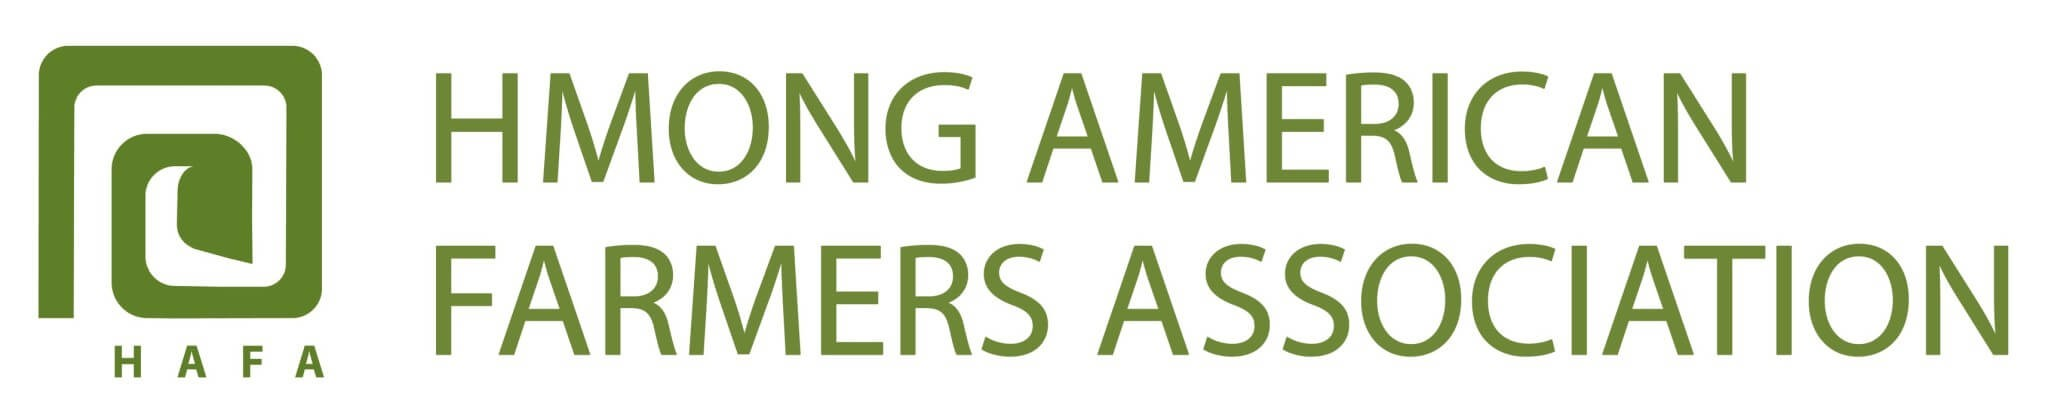 Hmong American Farmers Association